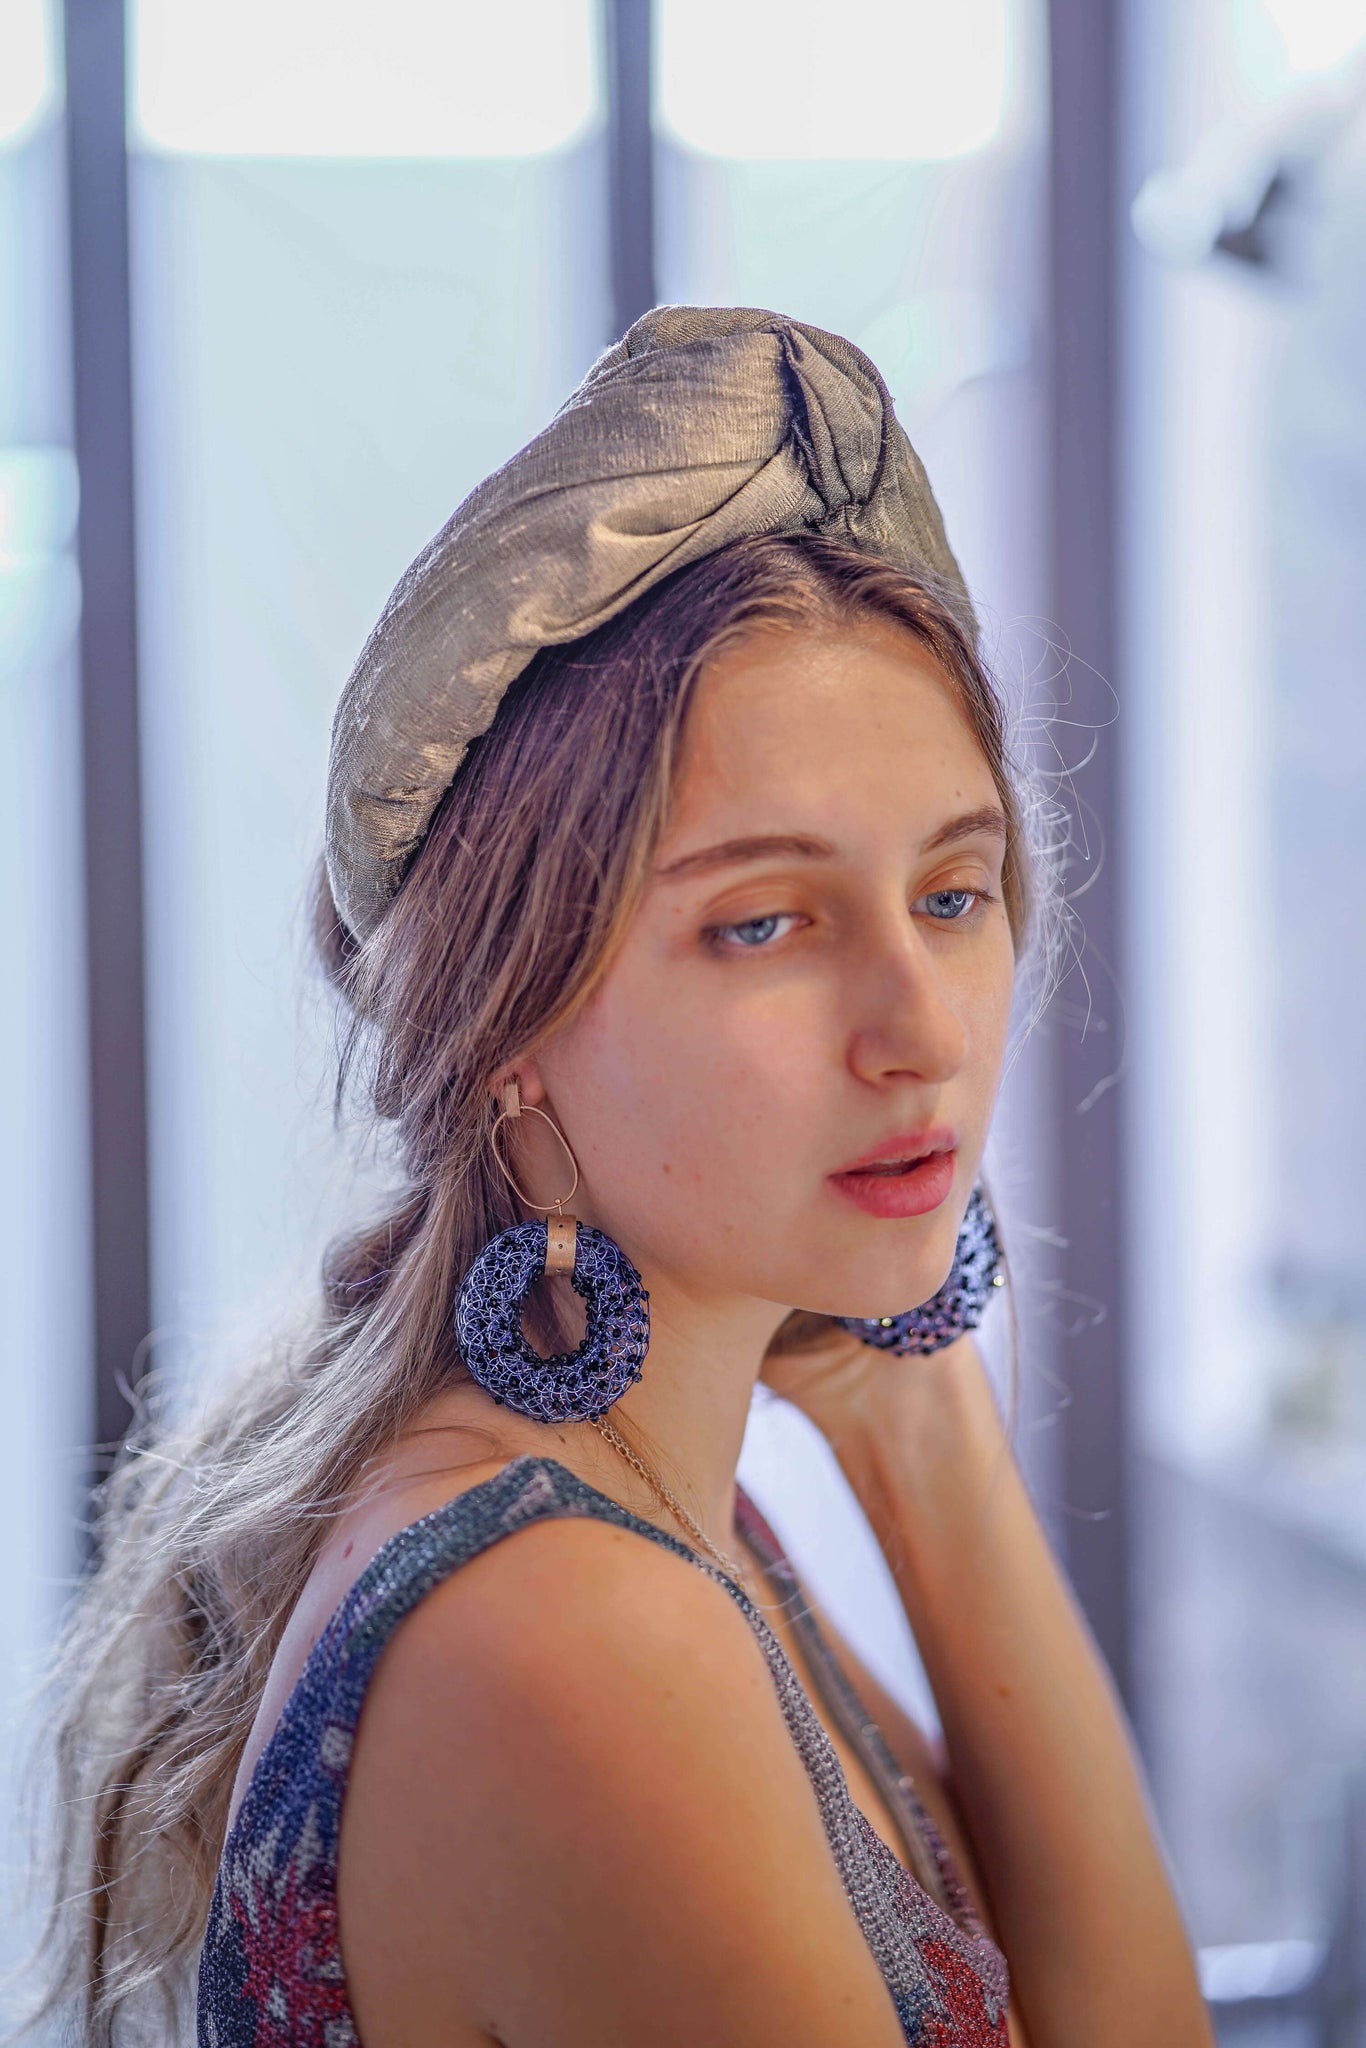 silk turban stylish fashion turbans women trendy hair accessories TANYA LITKOVSKA